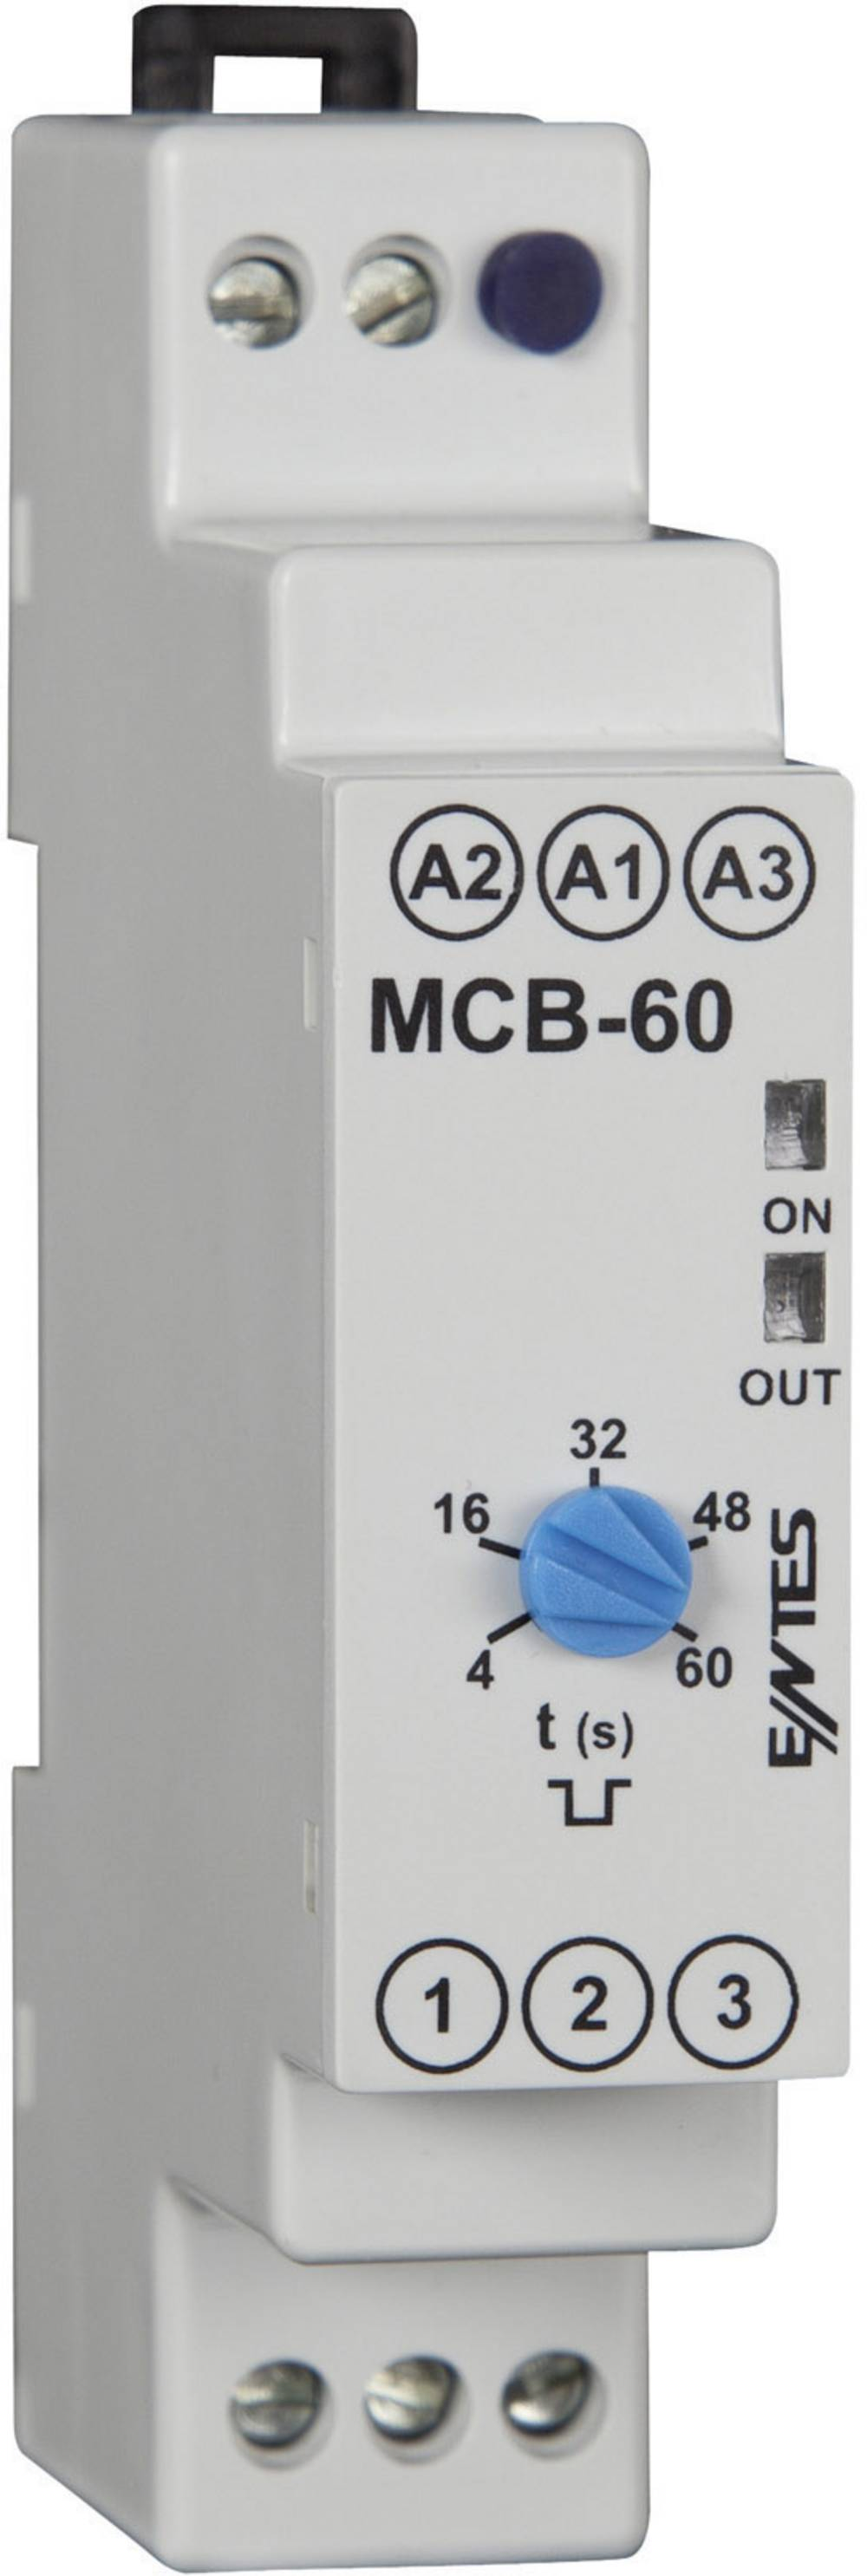 ENTES® MCB-60 Time Delay Relay, Timer, SPDT-CO (8 A) 24 V/AC/DC/230 V/AC